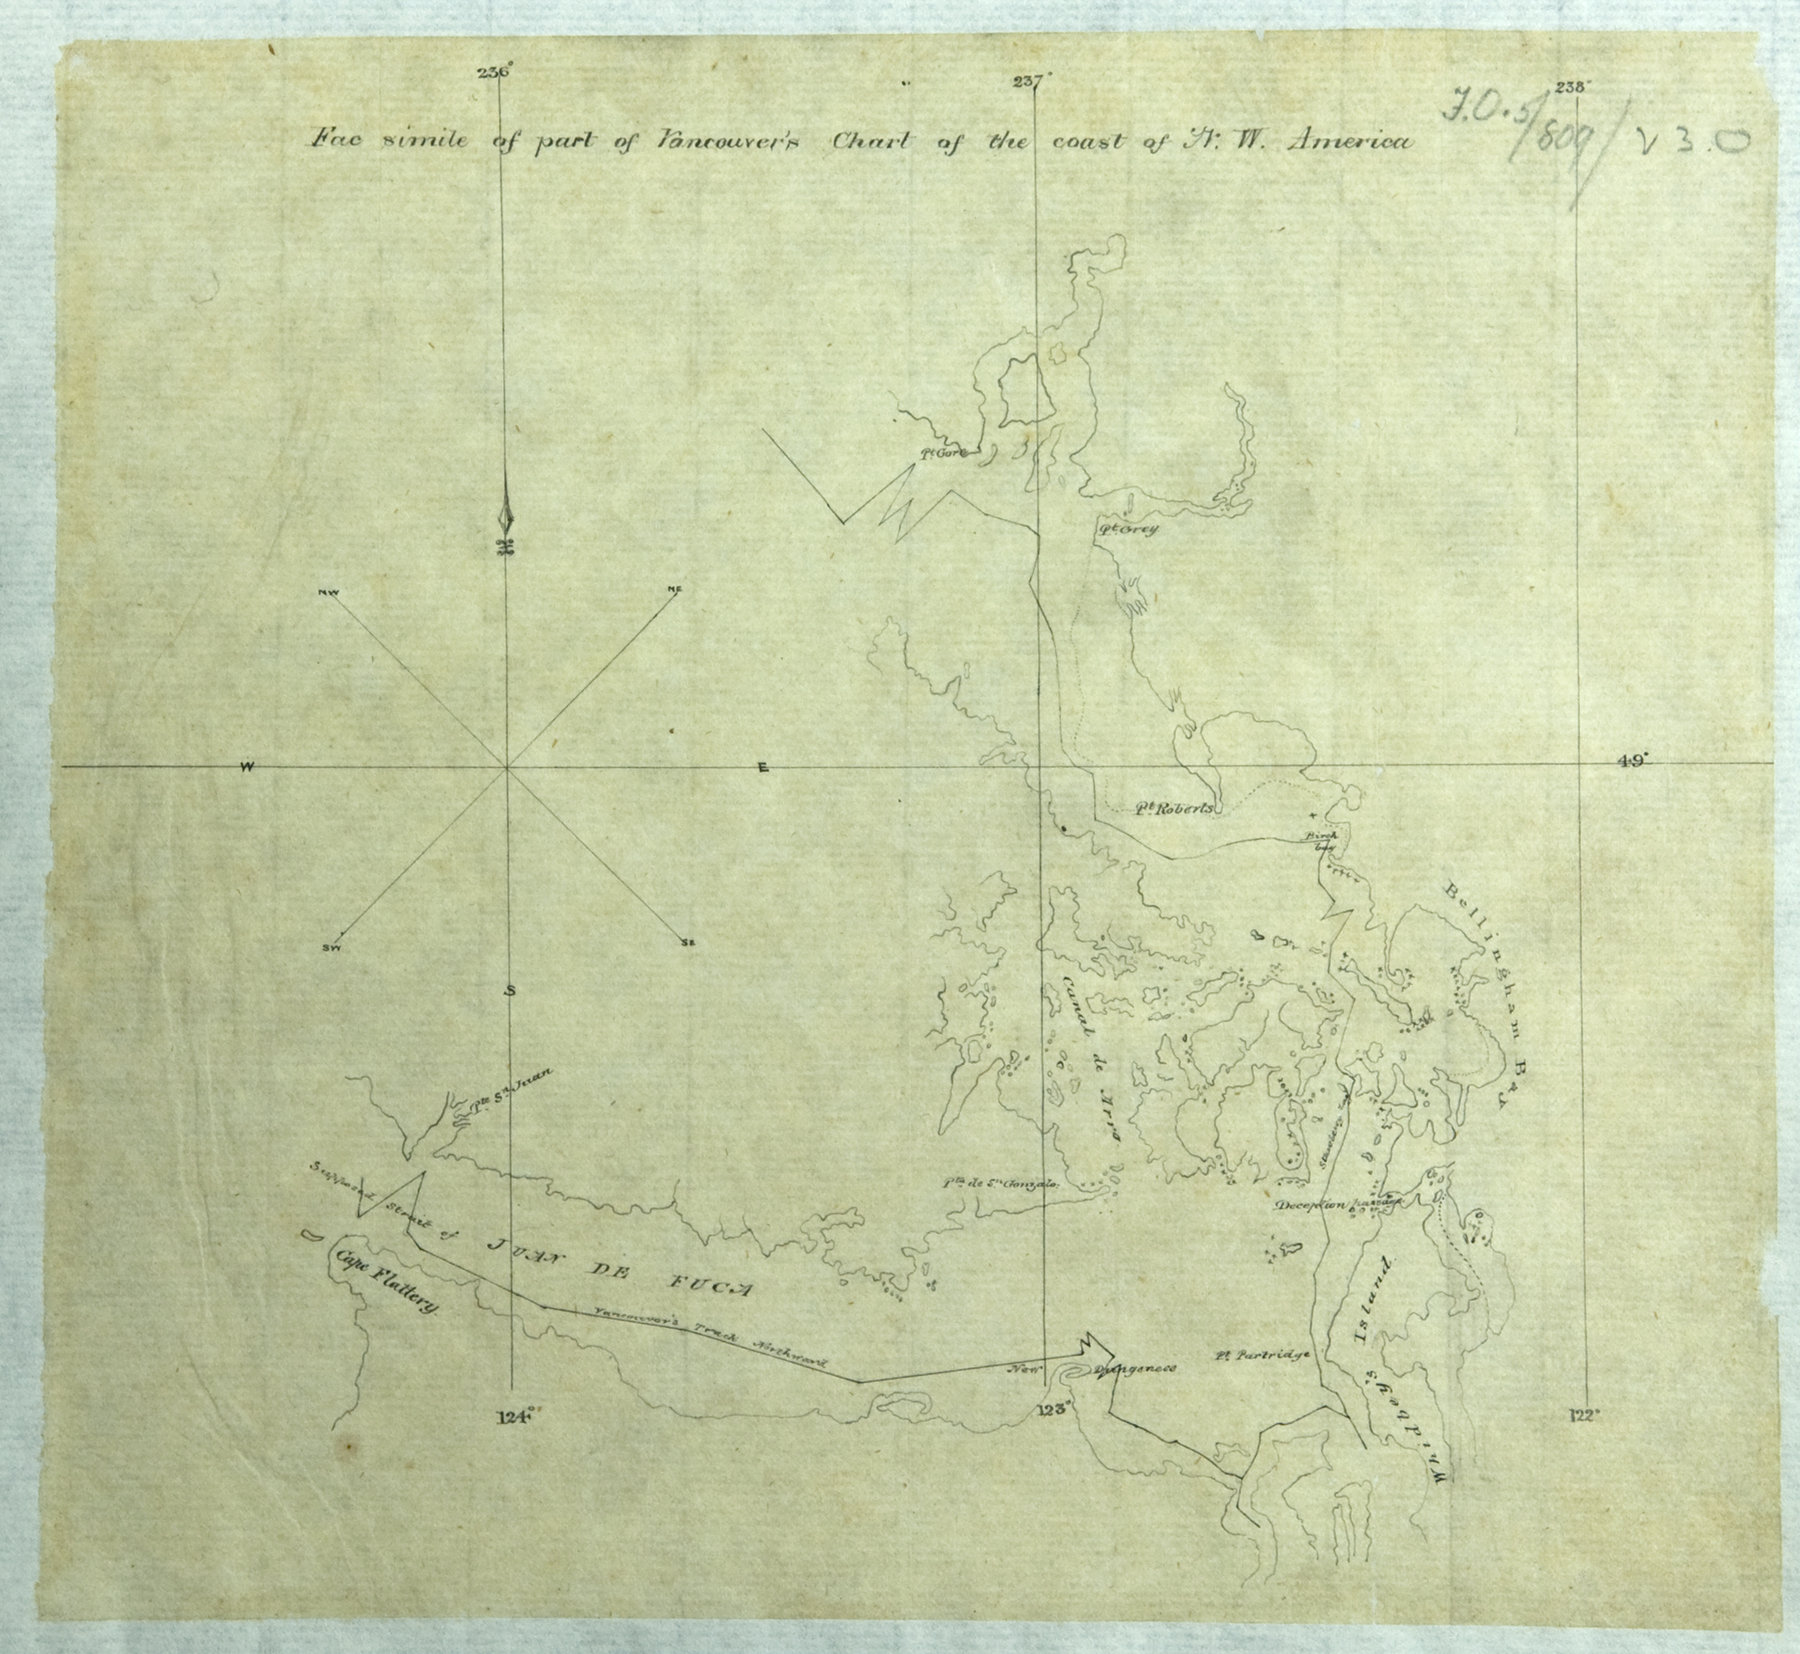 Facsimile of part of Vancouver's chart of the coast of N.W. America.